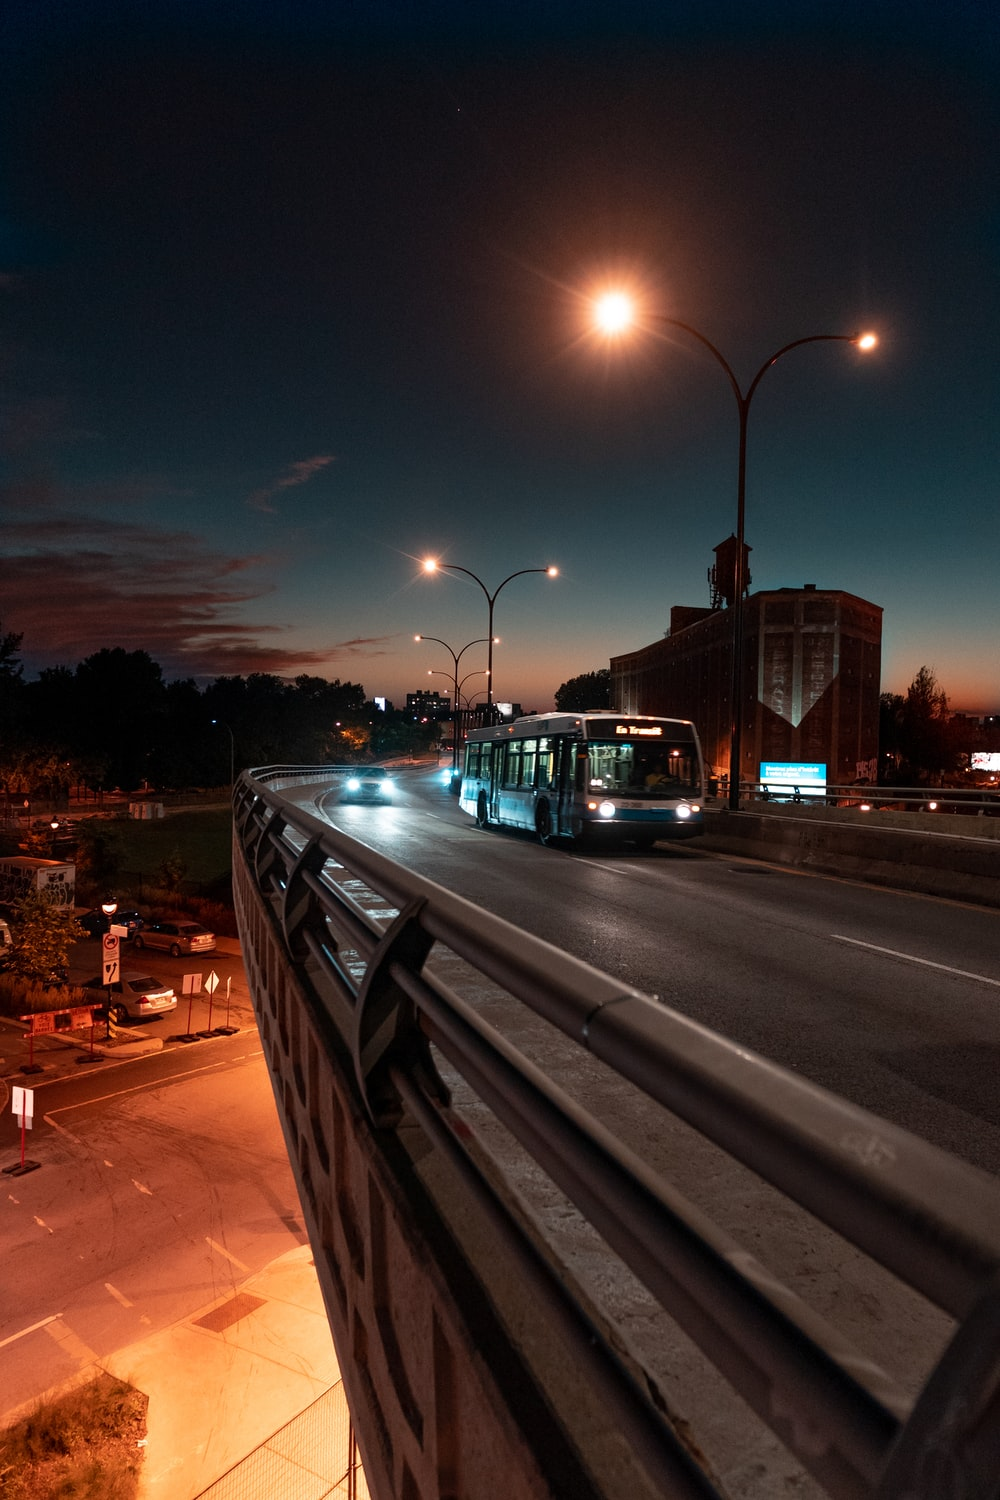 bus on road during nighttime